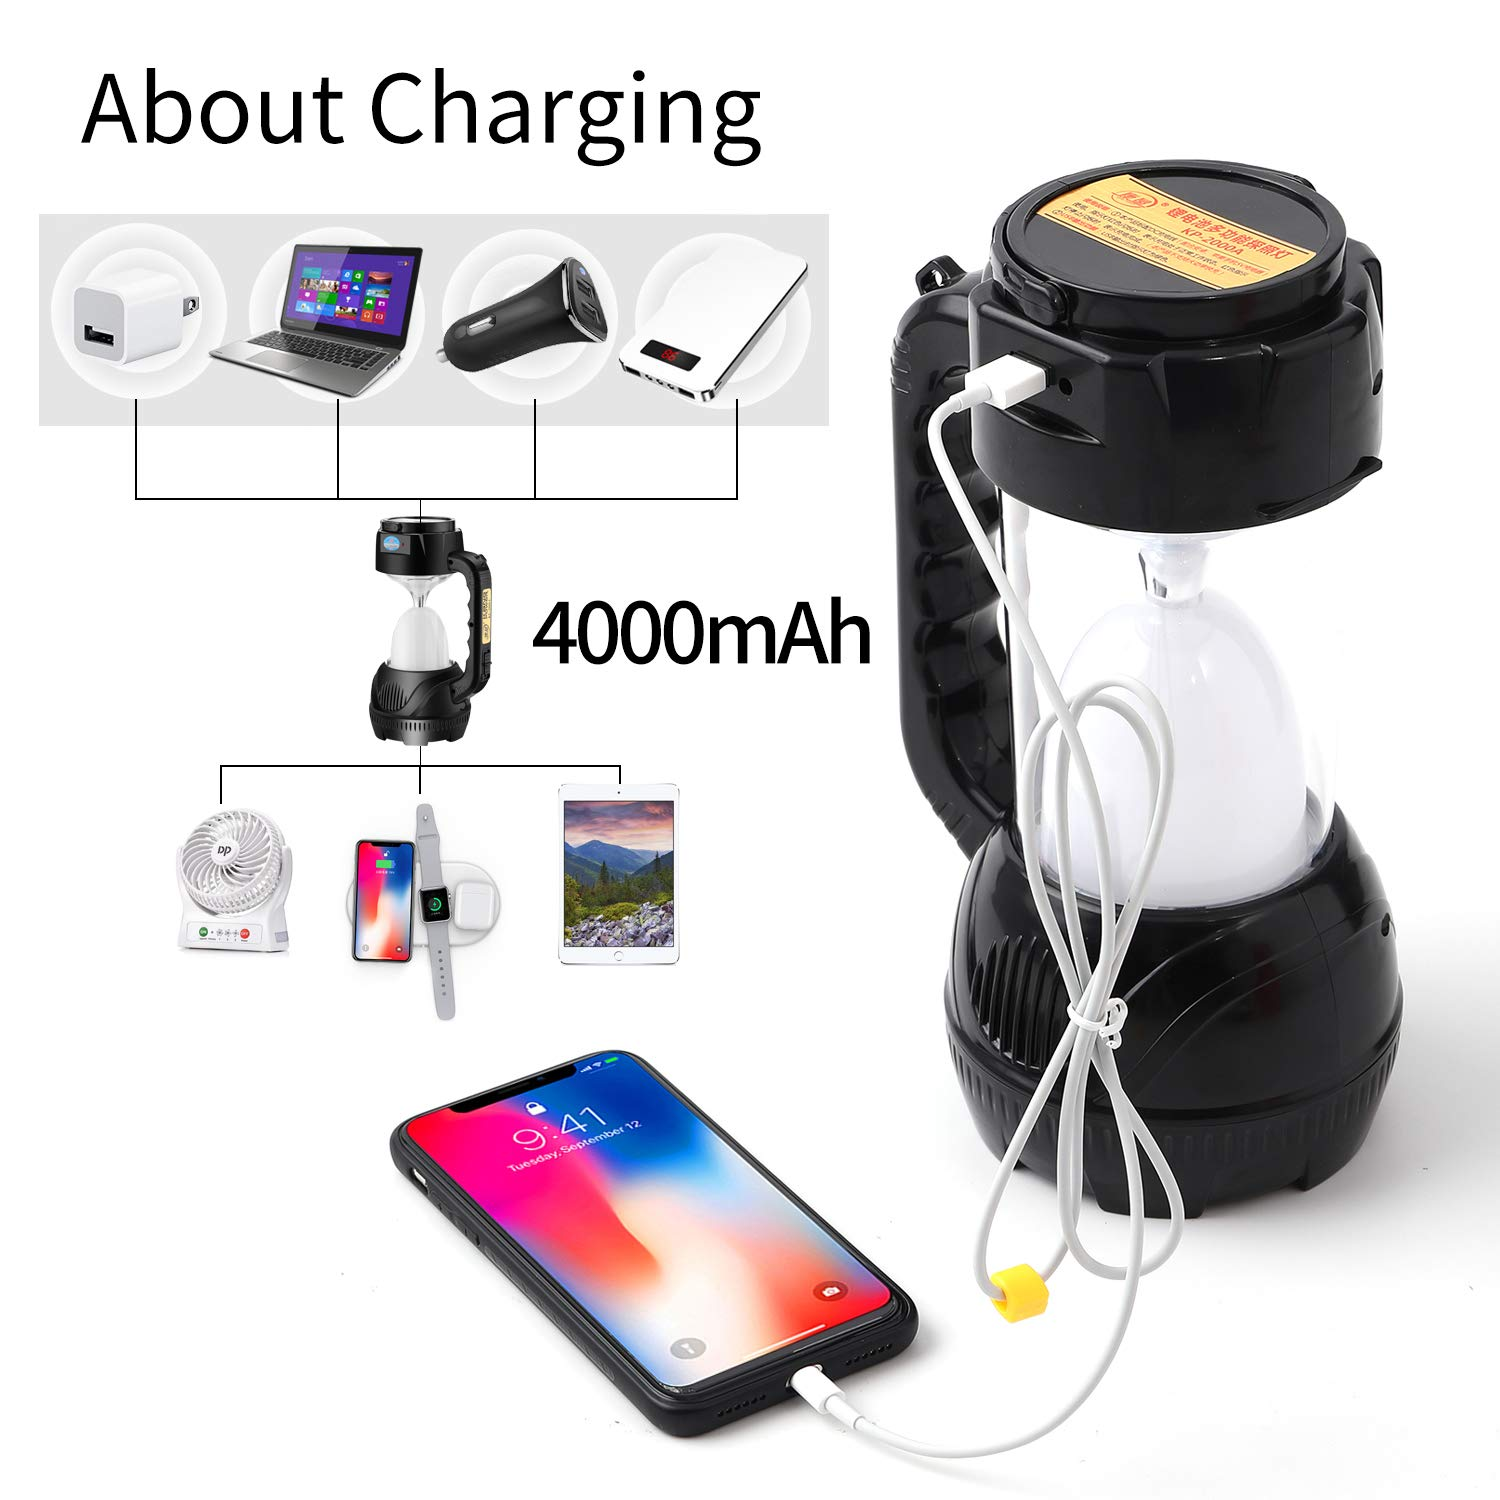 Large Flashlight 1200m Super Bright with Fully Adjustable 360 Arc Lighting and 4000mAh Power Bank Portable Hanging for Outdoor Emergency Hiking Fishing LED Camping Lantern LED Camping Lantern